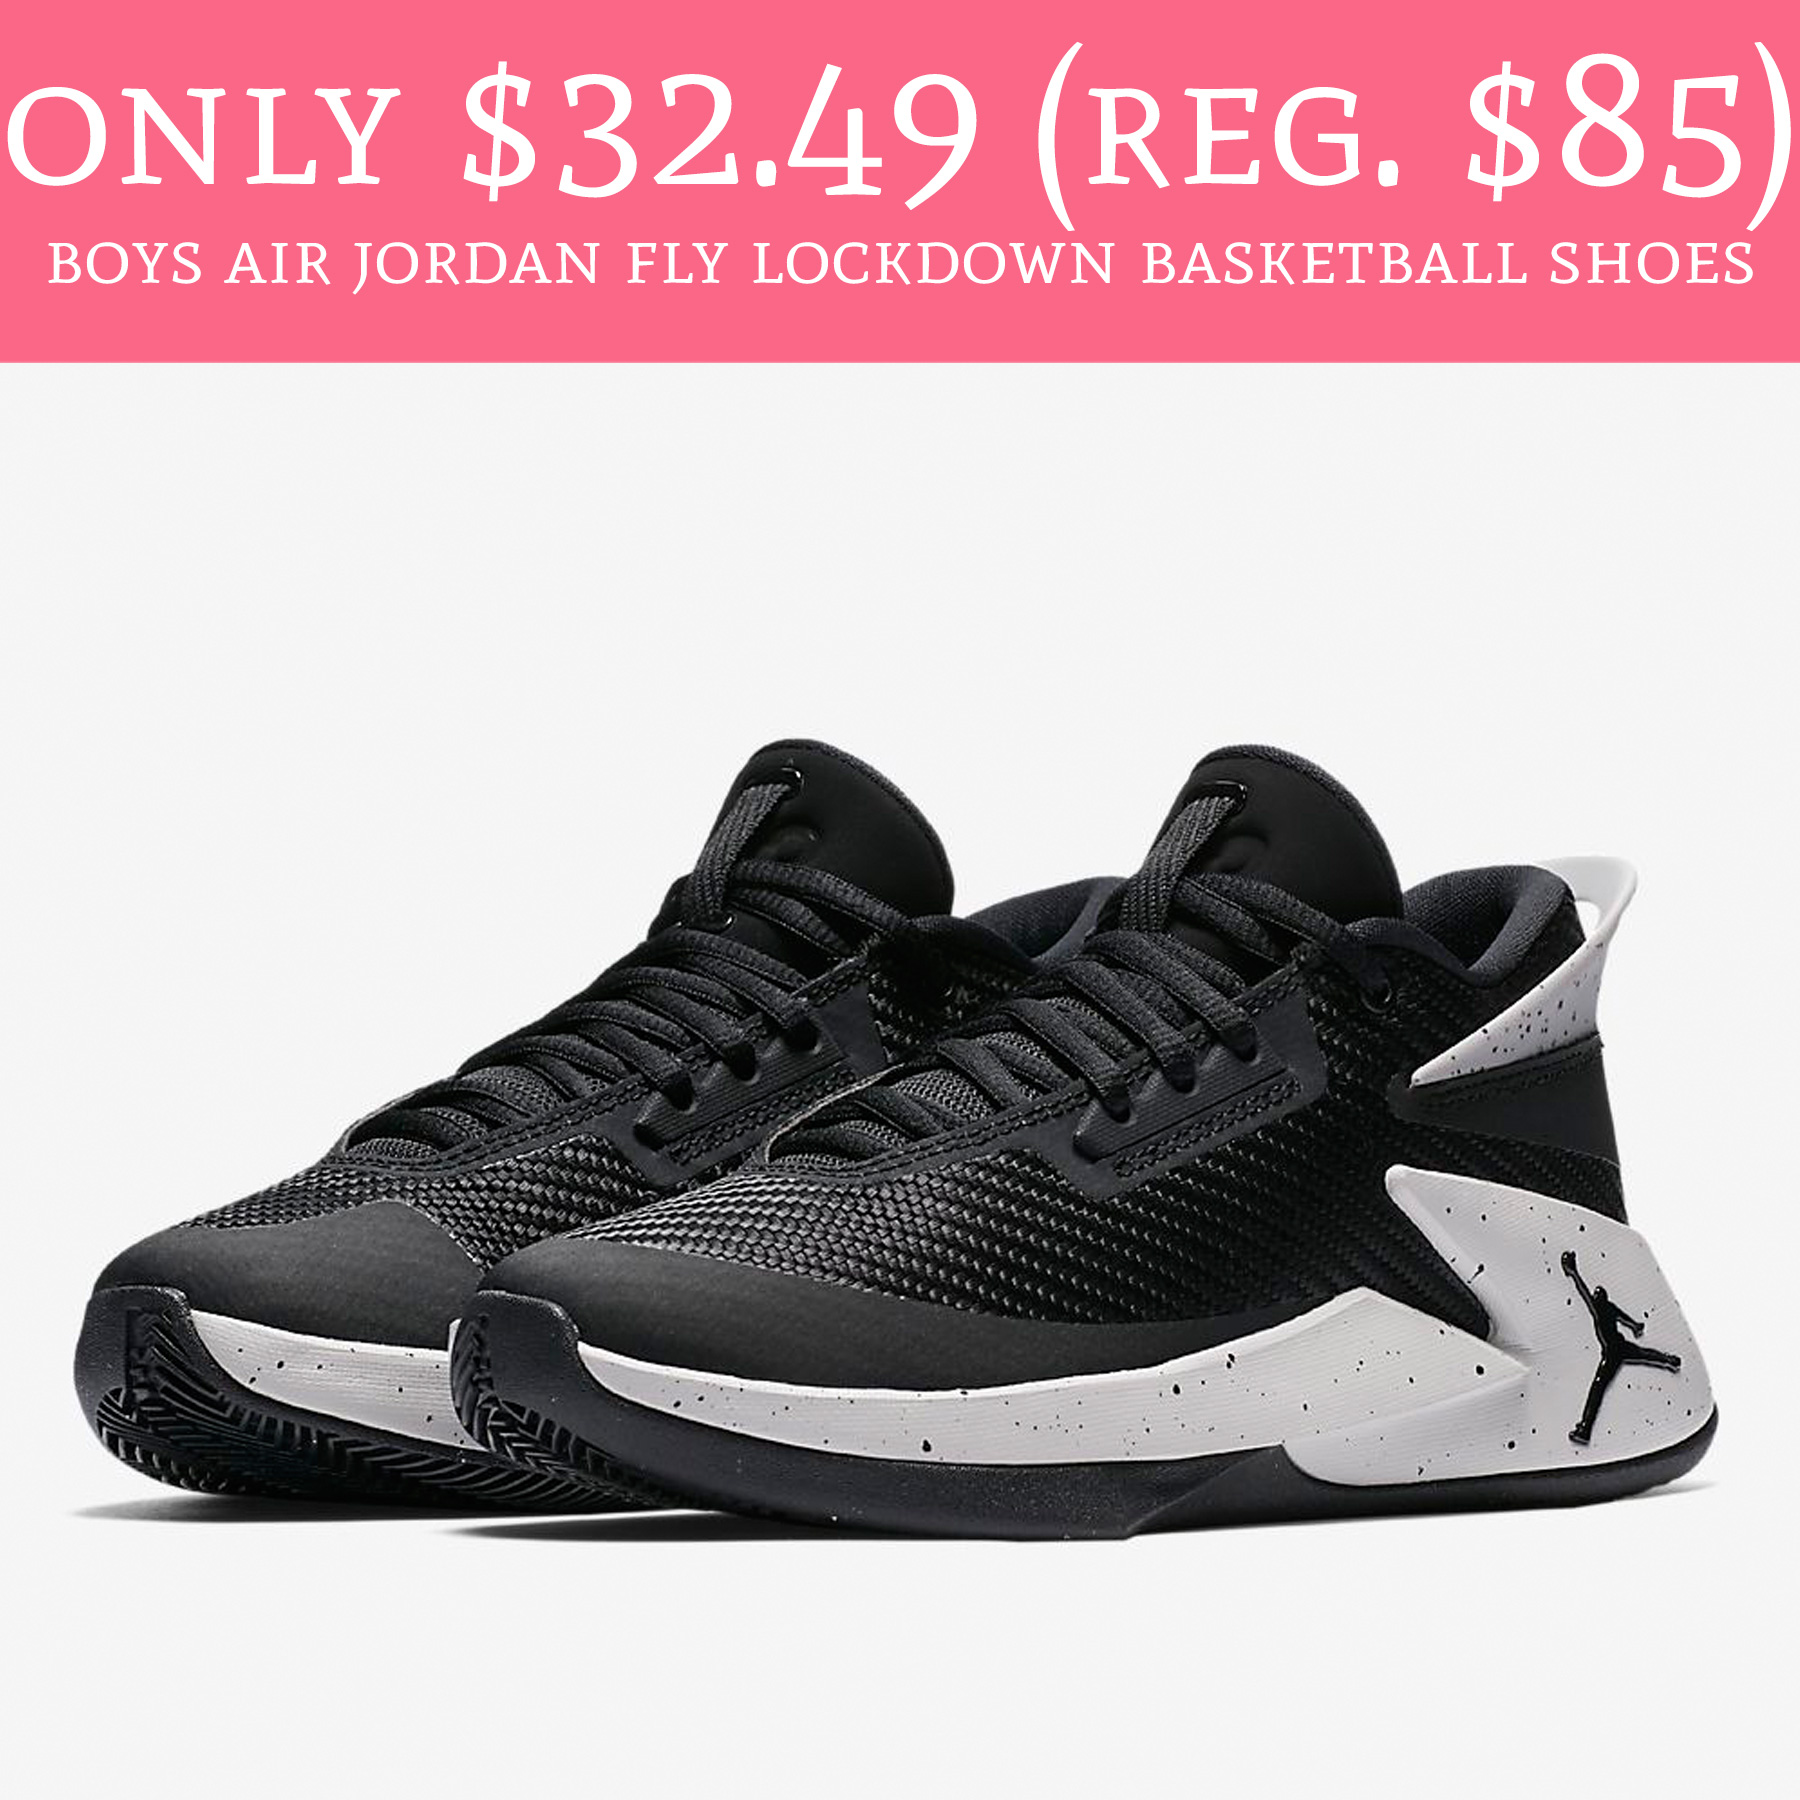 9b13cc24e80 These will sell out fast! Run over to FinishLine.com where you can order  Big Boys Air Jordan Fly Lockdown Basketball Shoes ...